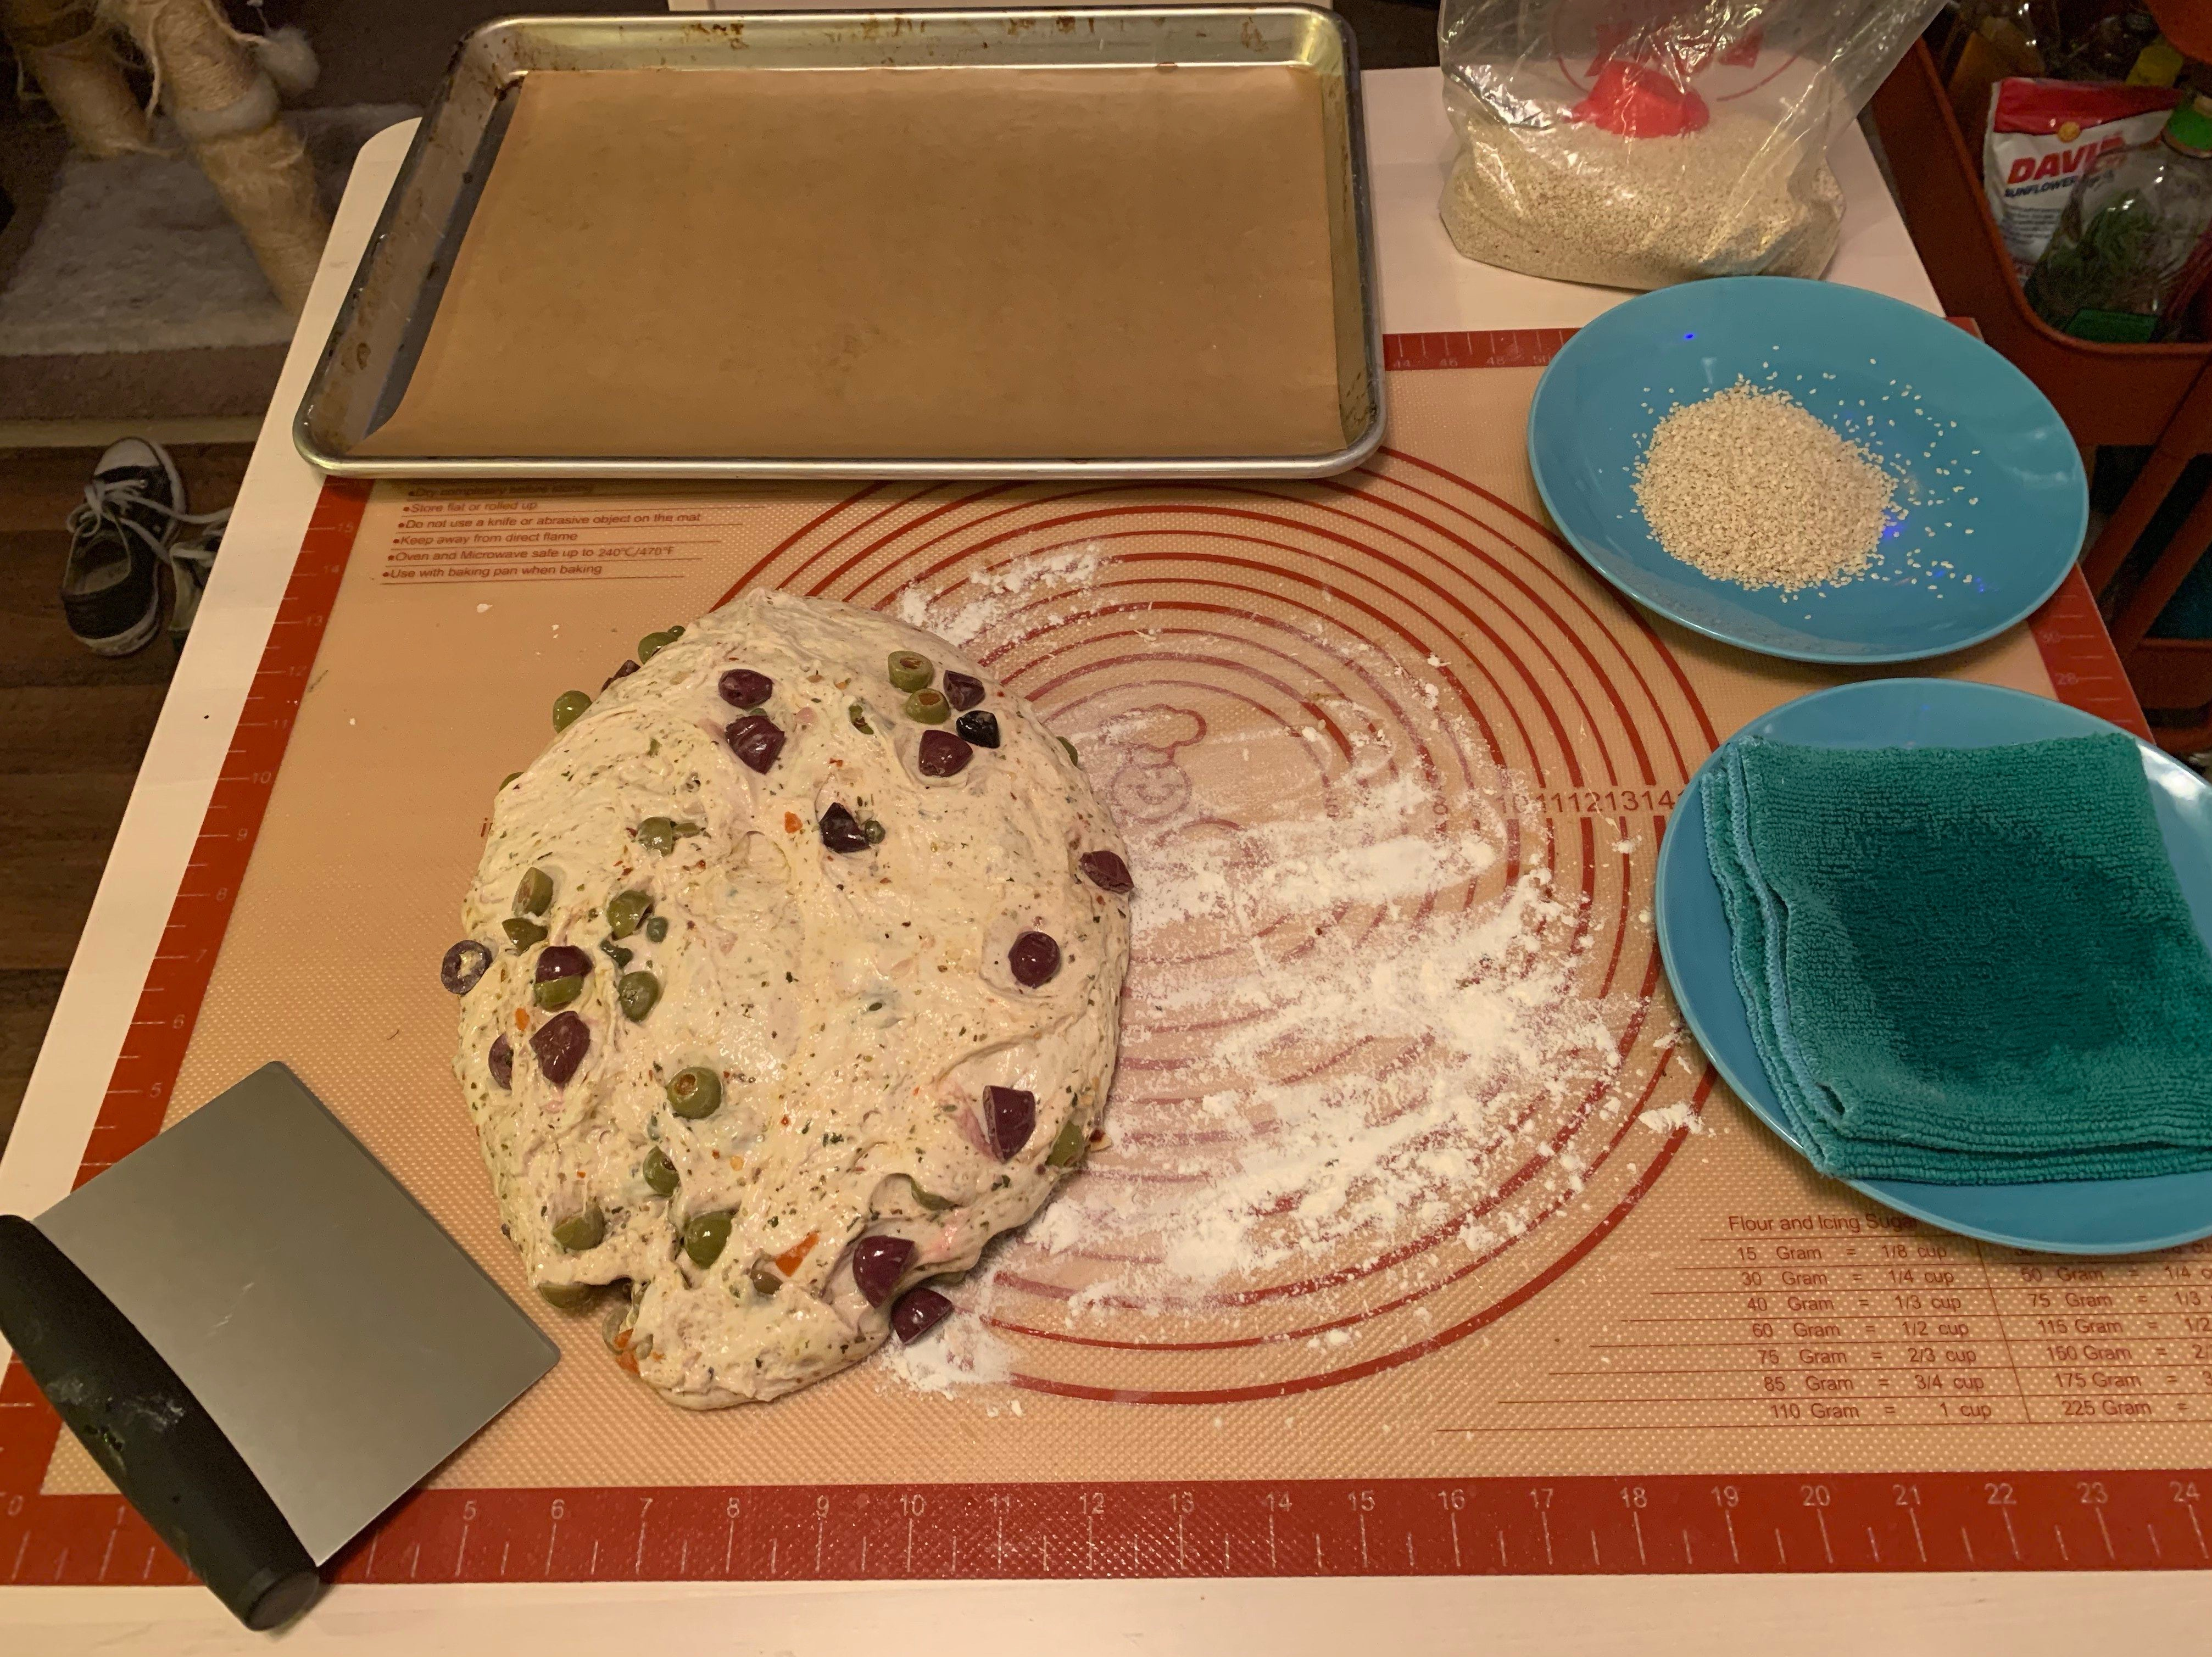 Table set up to shape rolls. Top right is a baking sheet with parchment paper. To the right is a bag full of sesame seeds with a measuring cup inside. Bottom half of table has a rubber mat. On the bottom left of the mat is a bench scraper. next to it is the fully bulked olive dough. Bottom right of the mat is a blue plate with a green towel on it; the towel is soaked in the middle with water. Above that plate is another blue plate with a pile of sesame seeds.